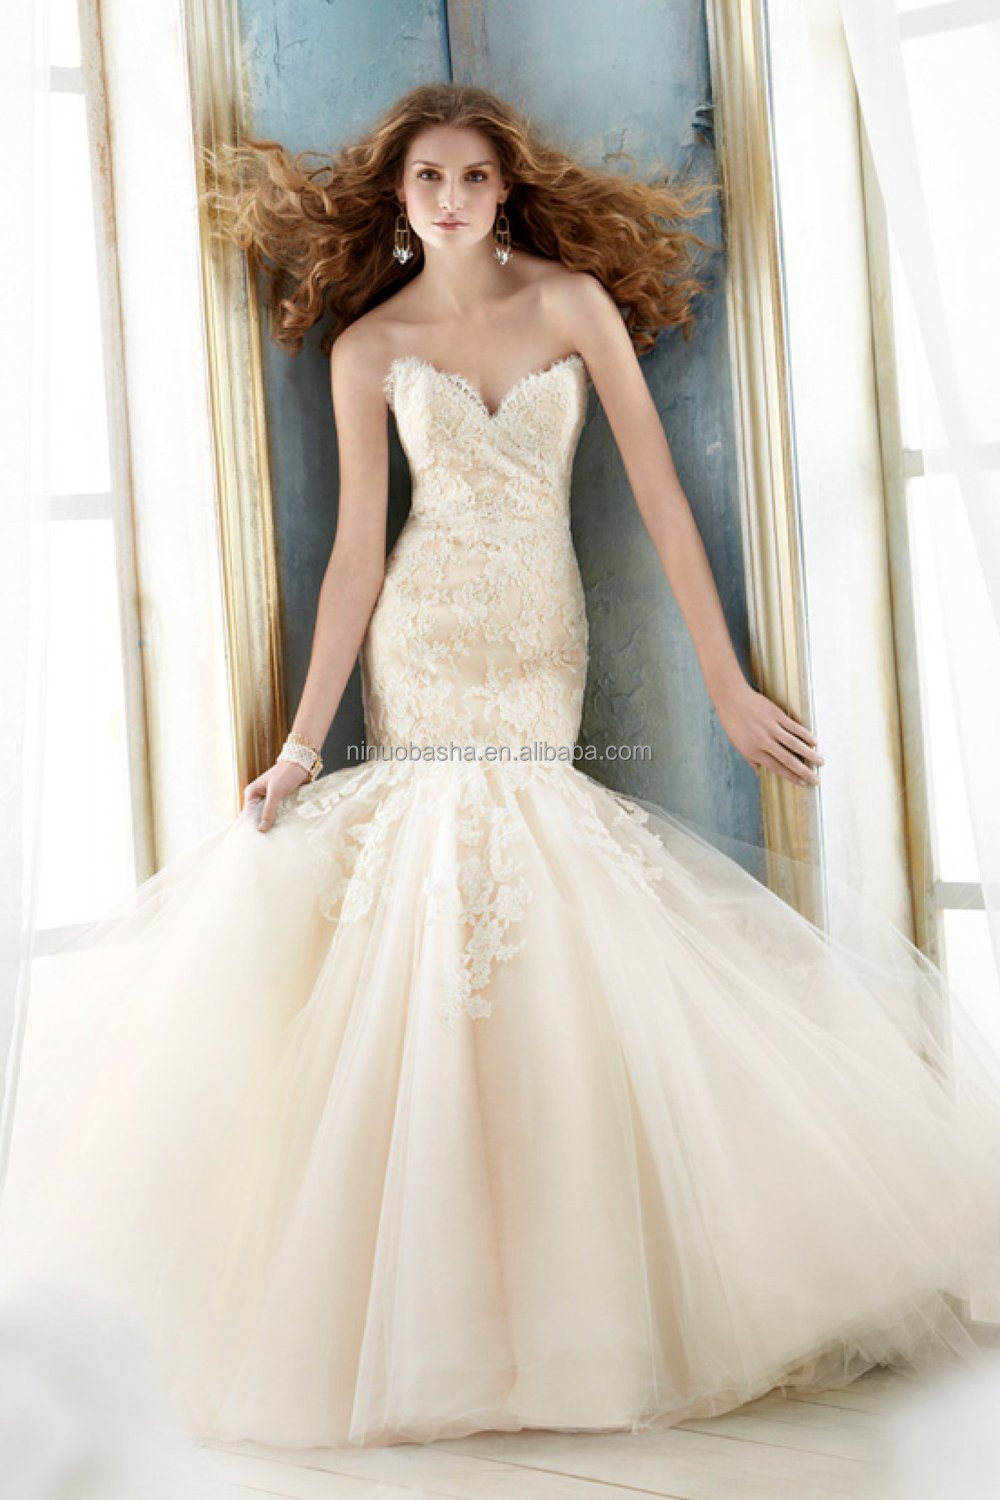 2015 Champagne Mermaid Wedding Dress With Jacket Sweetheart Full ...